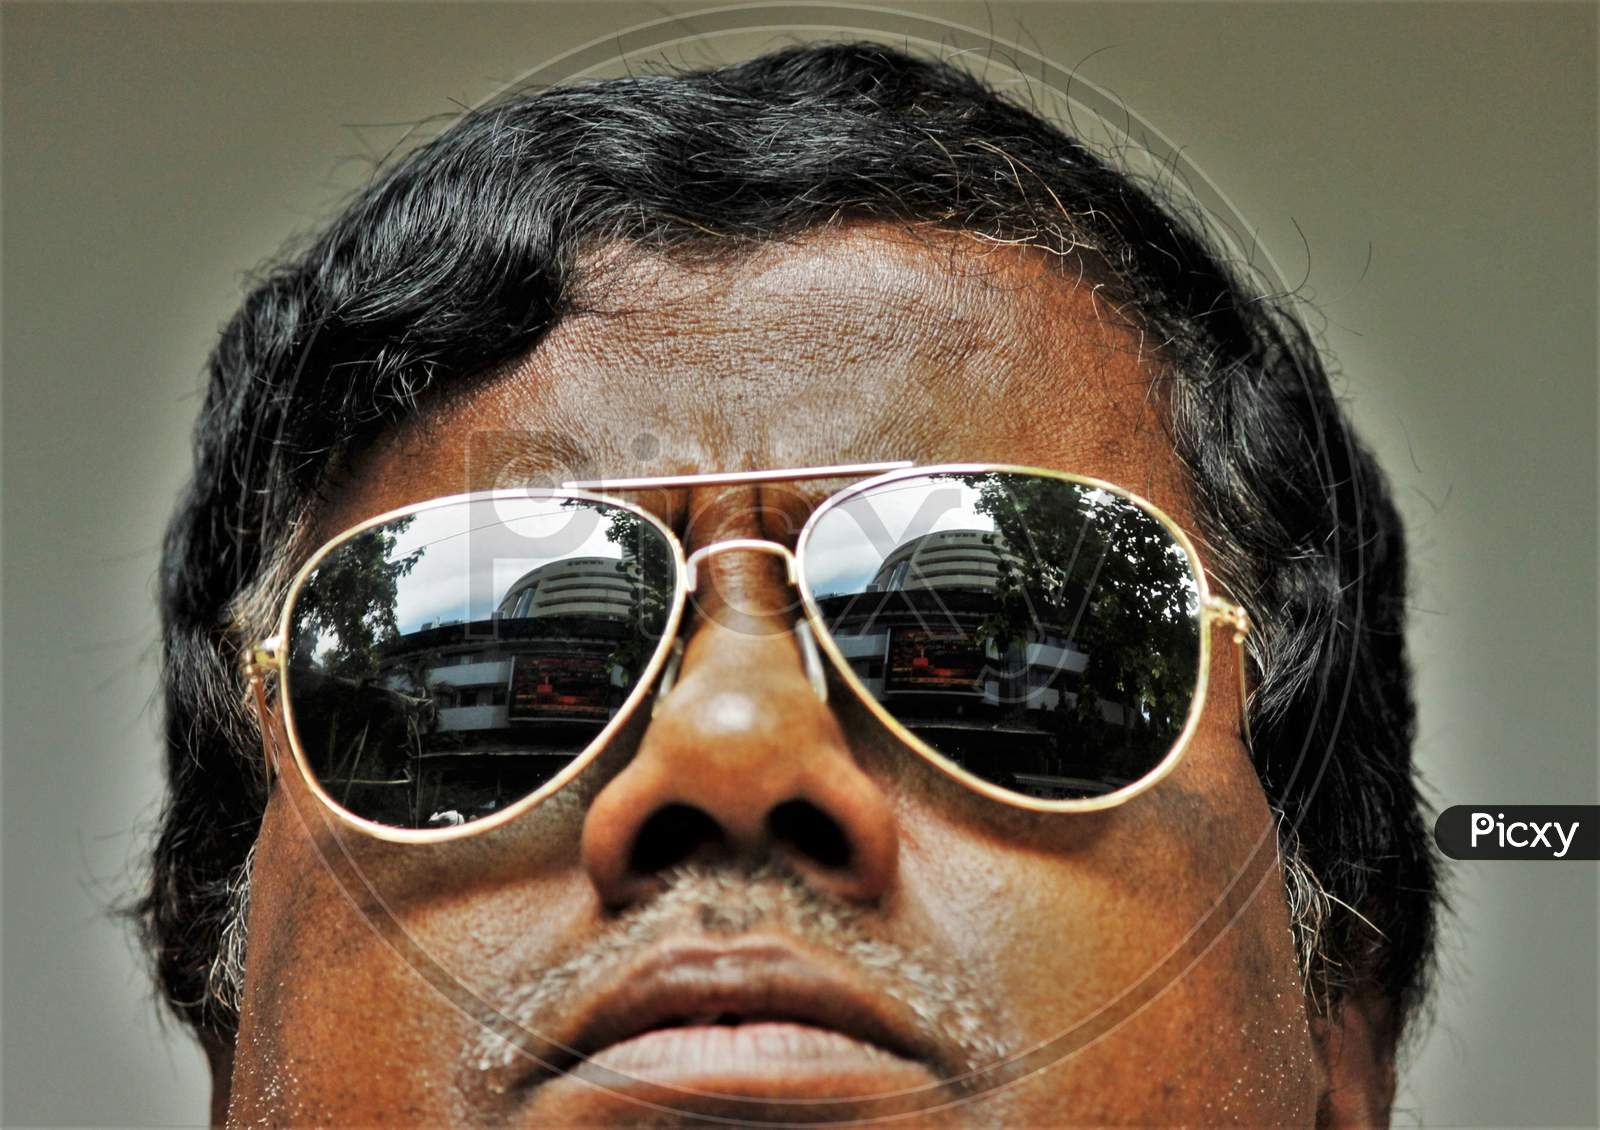 The Bombay Stock Exchange (BSE) building is reflected in the glasses of a man as he watches the Sensex results following the coronavirus outbreak, on the large screen outside the facade of the building in Mumbai, March 12, 2020.